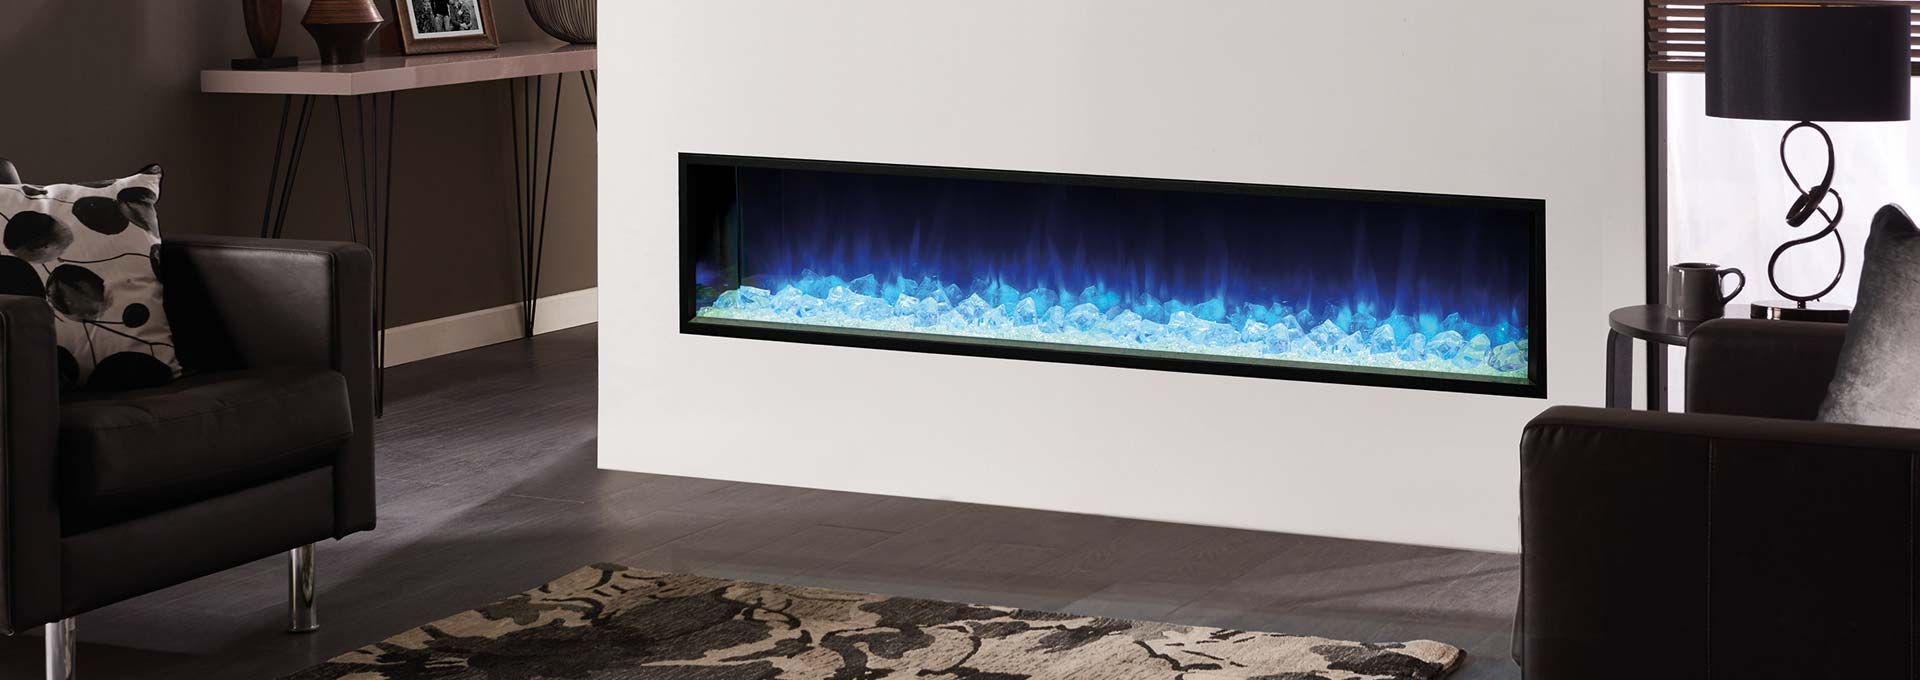 Top 5 Reasons to Buy an Electric Fireplace